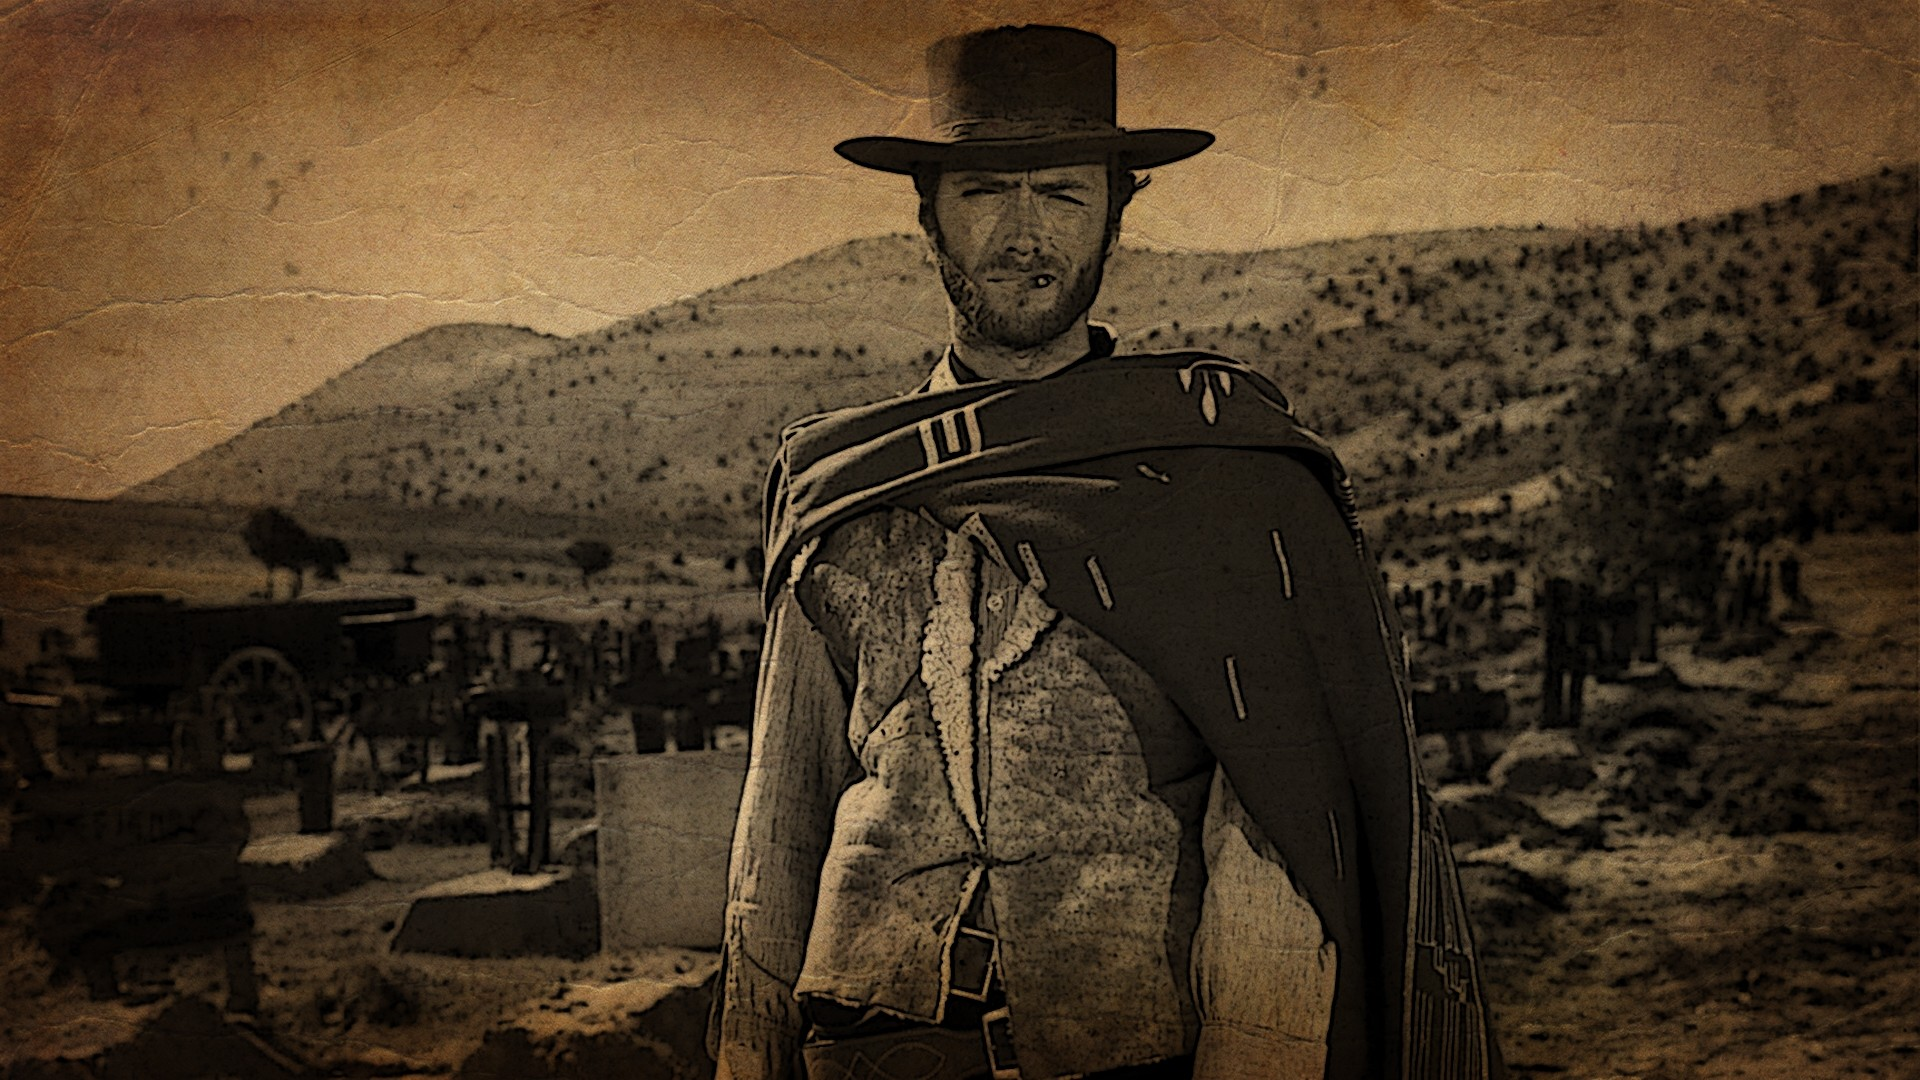 Res: 1920x1080, The Good, The Bad And The Ugly Wallpapers 14 - 1920 X 1080